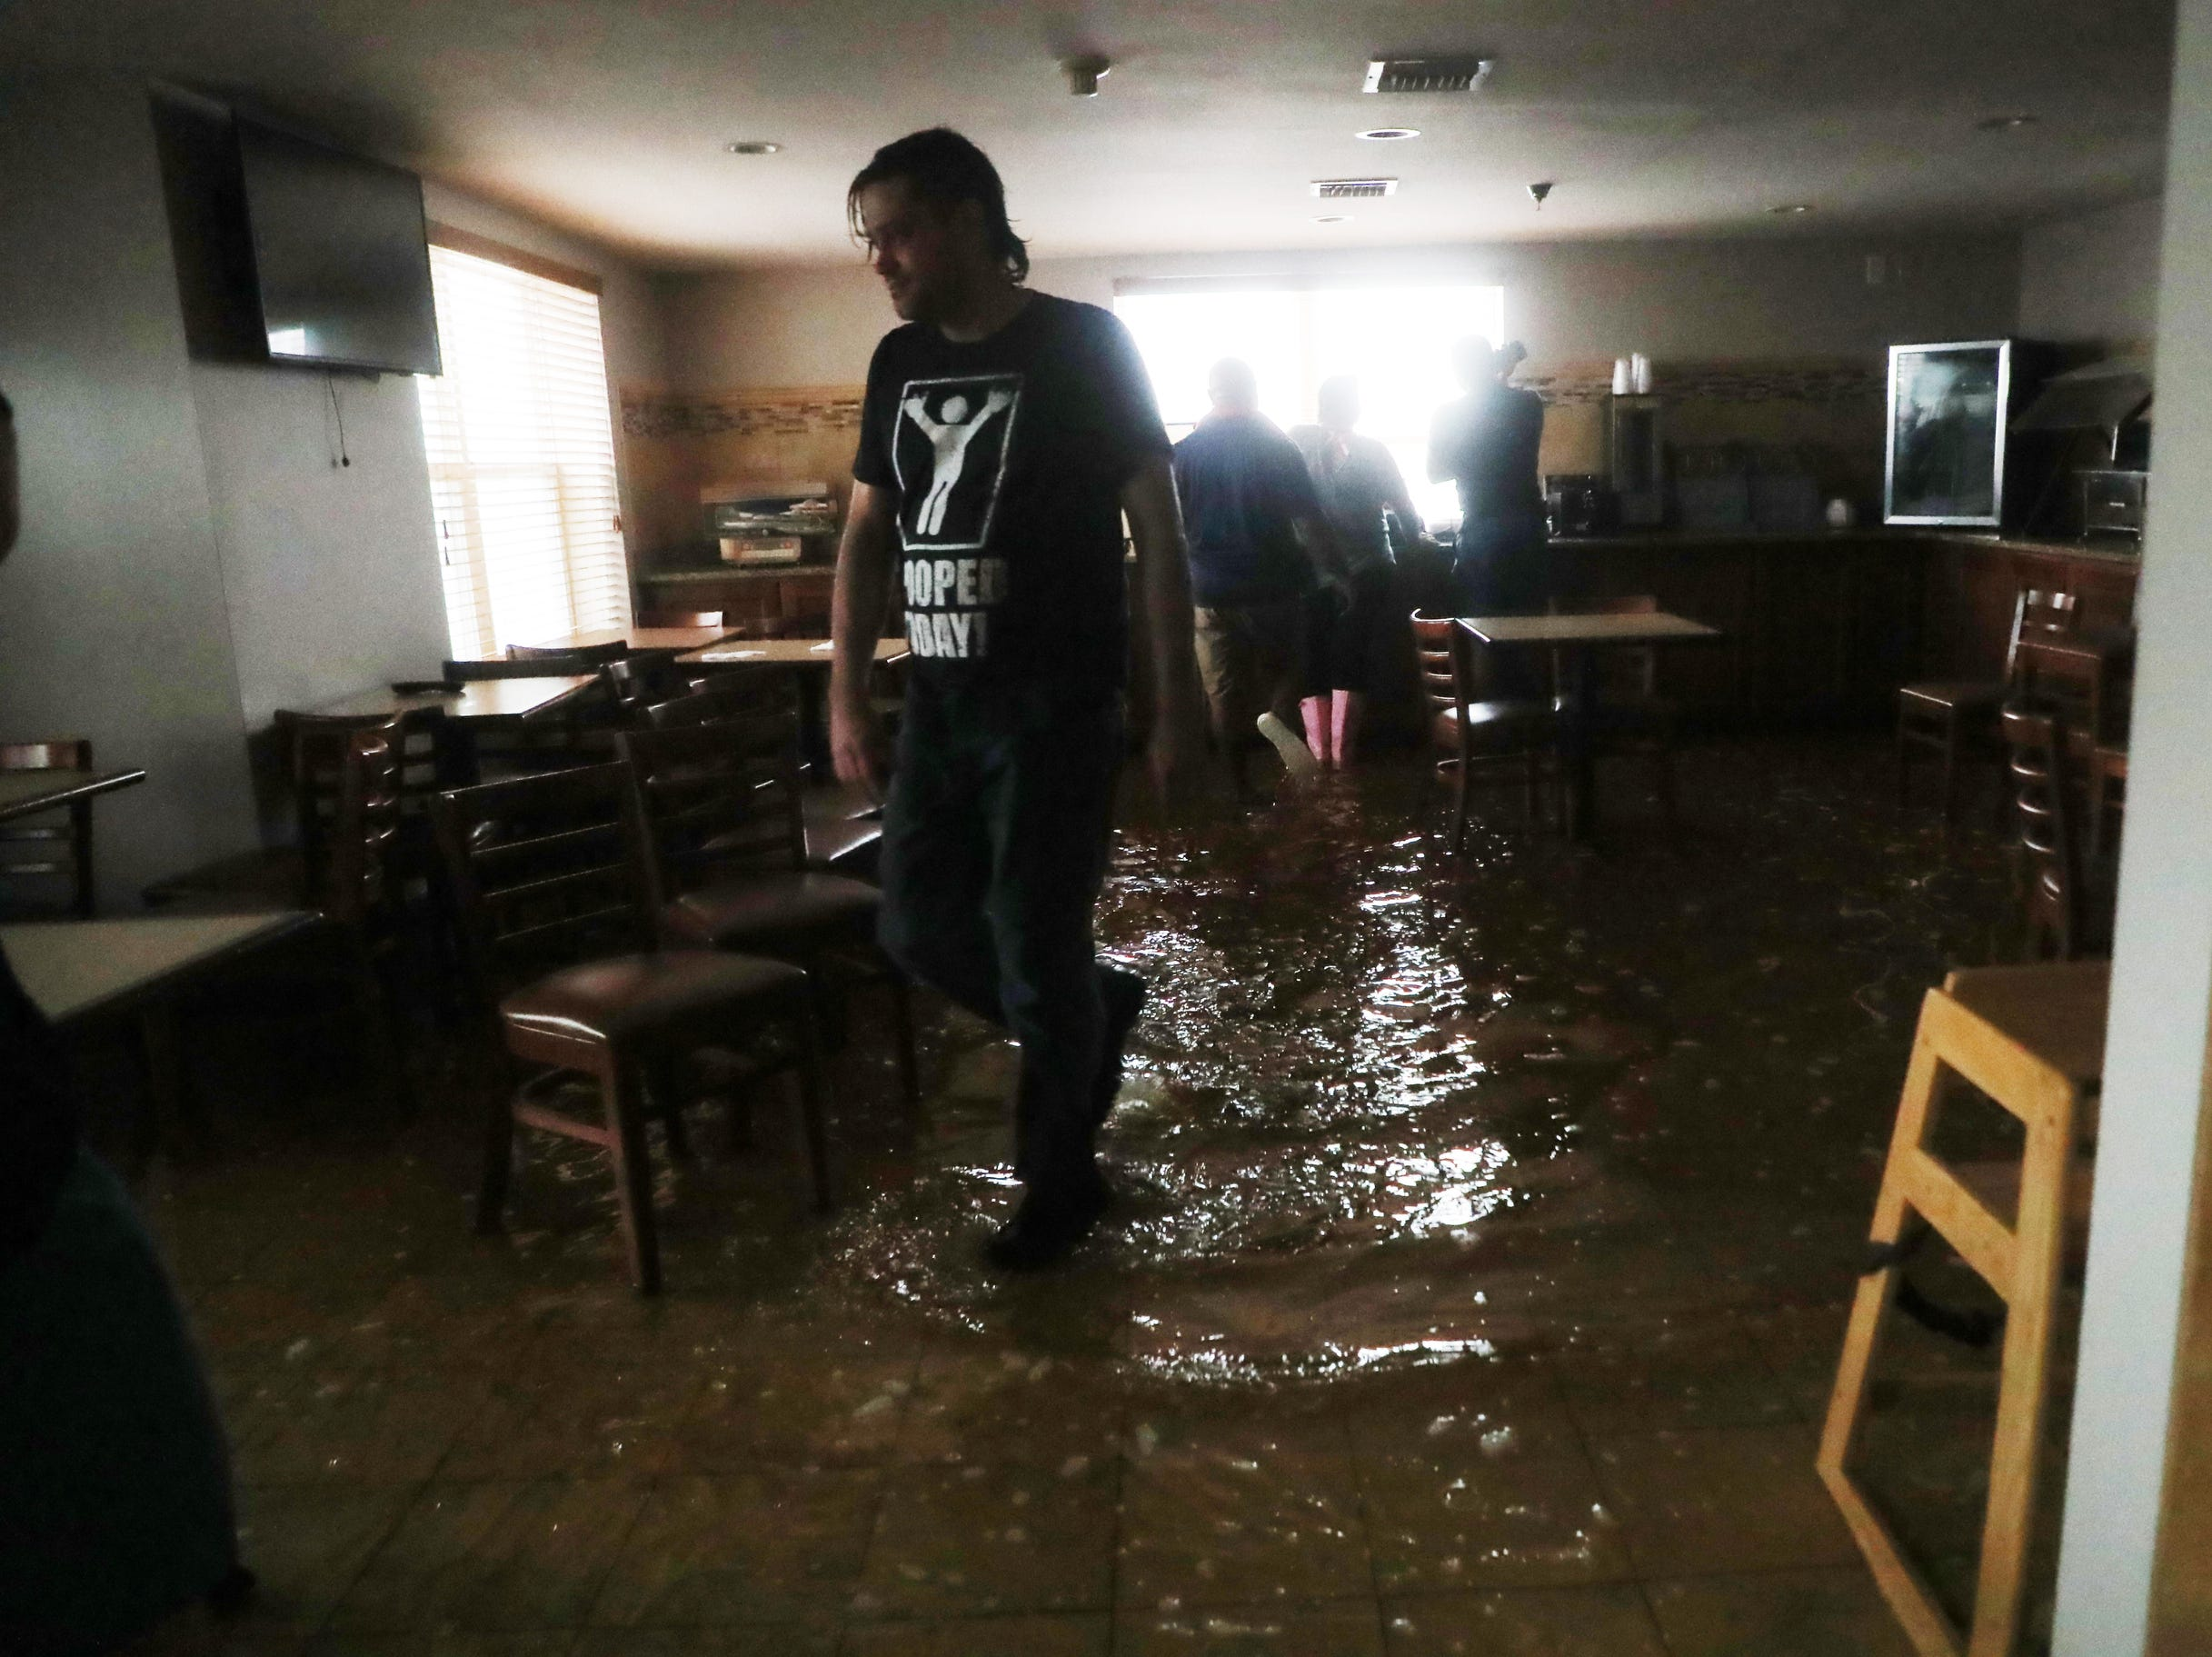 Jacob Merritt walks through a flooded hotel cafeteria at the Country Inn in Panama City on Wednesday 10/10/2018. (Via OlyDrop)